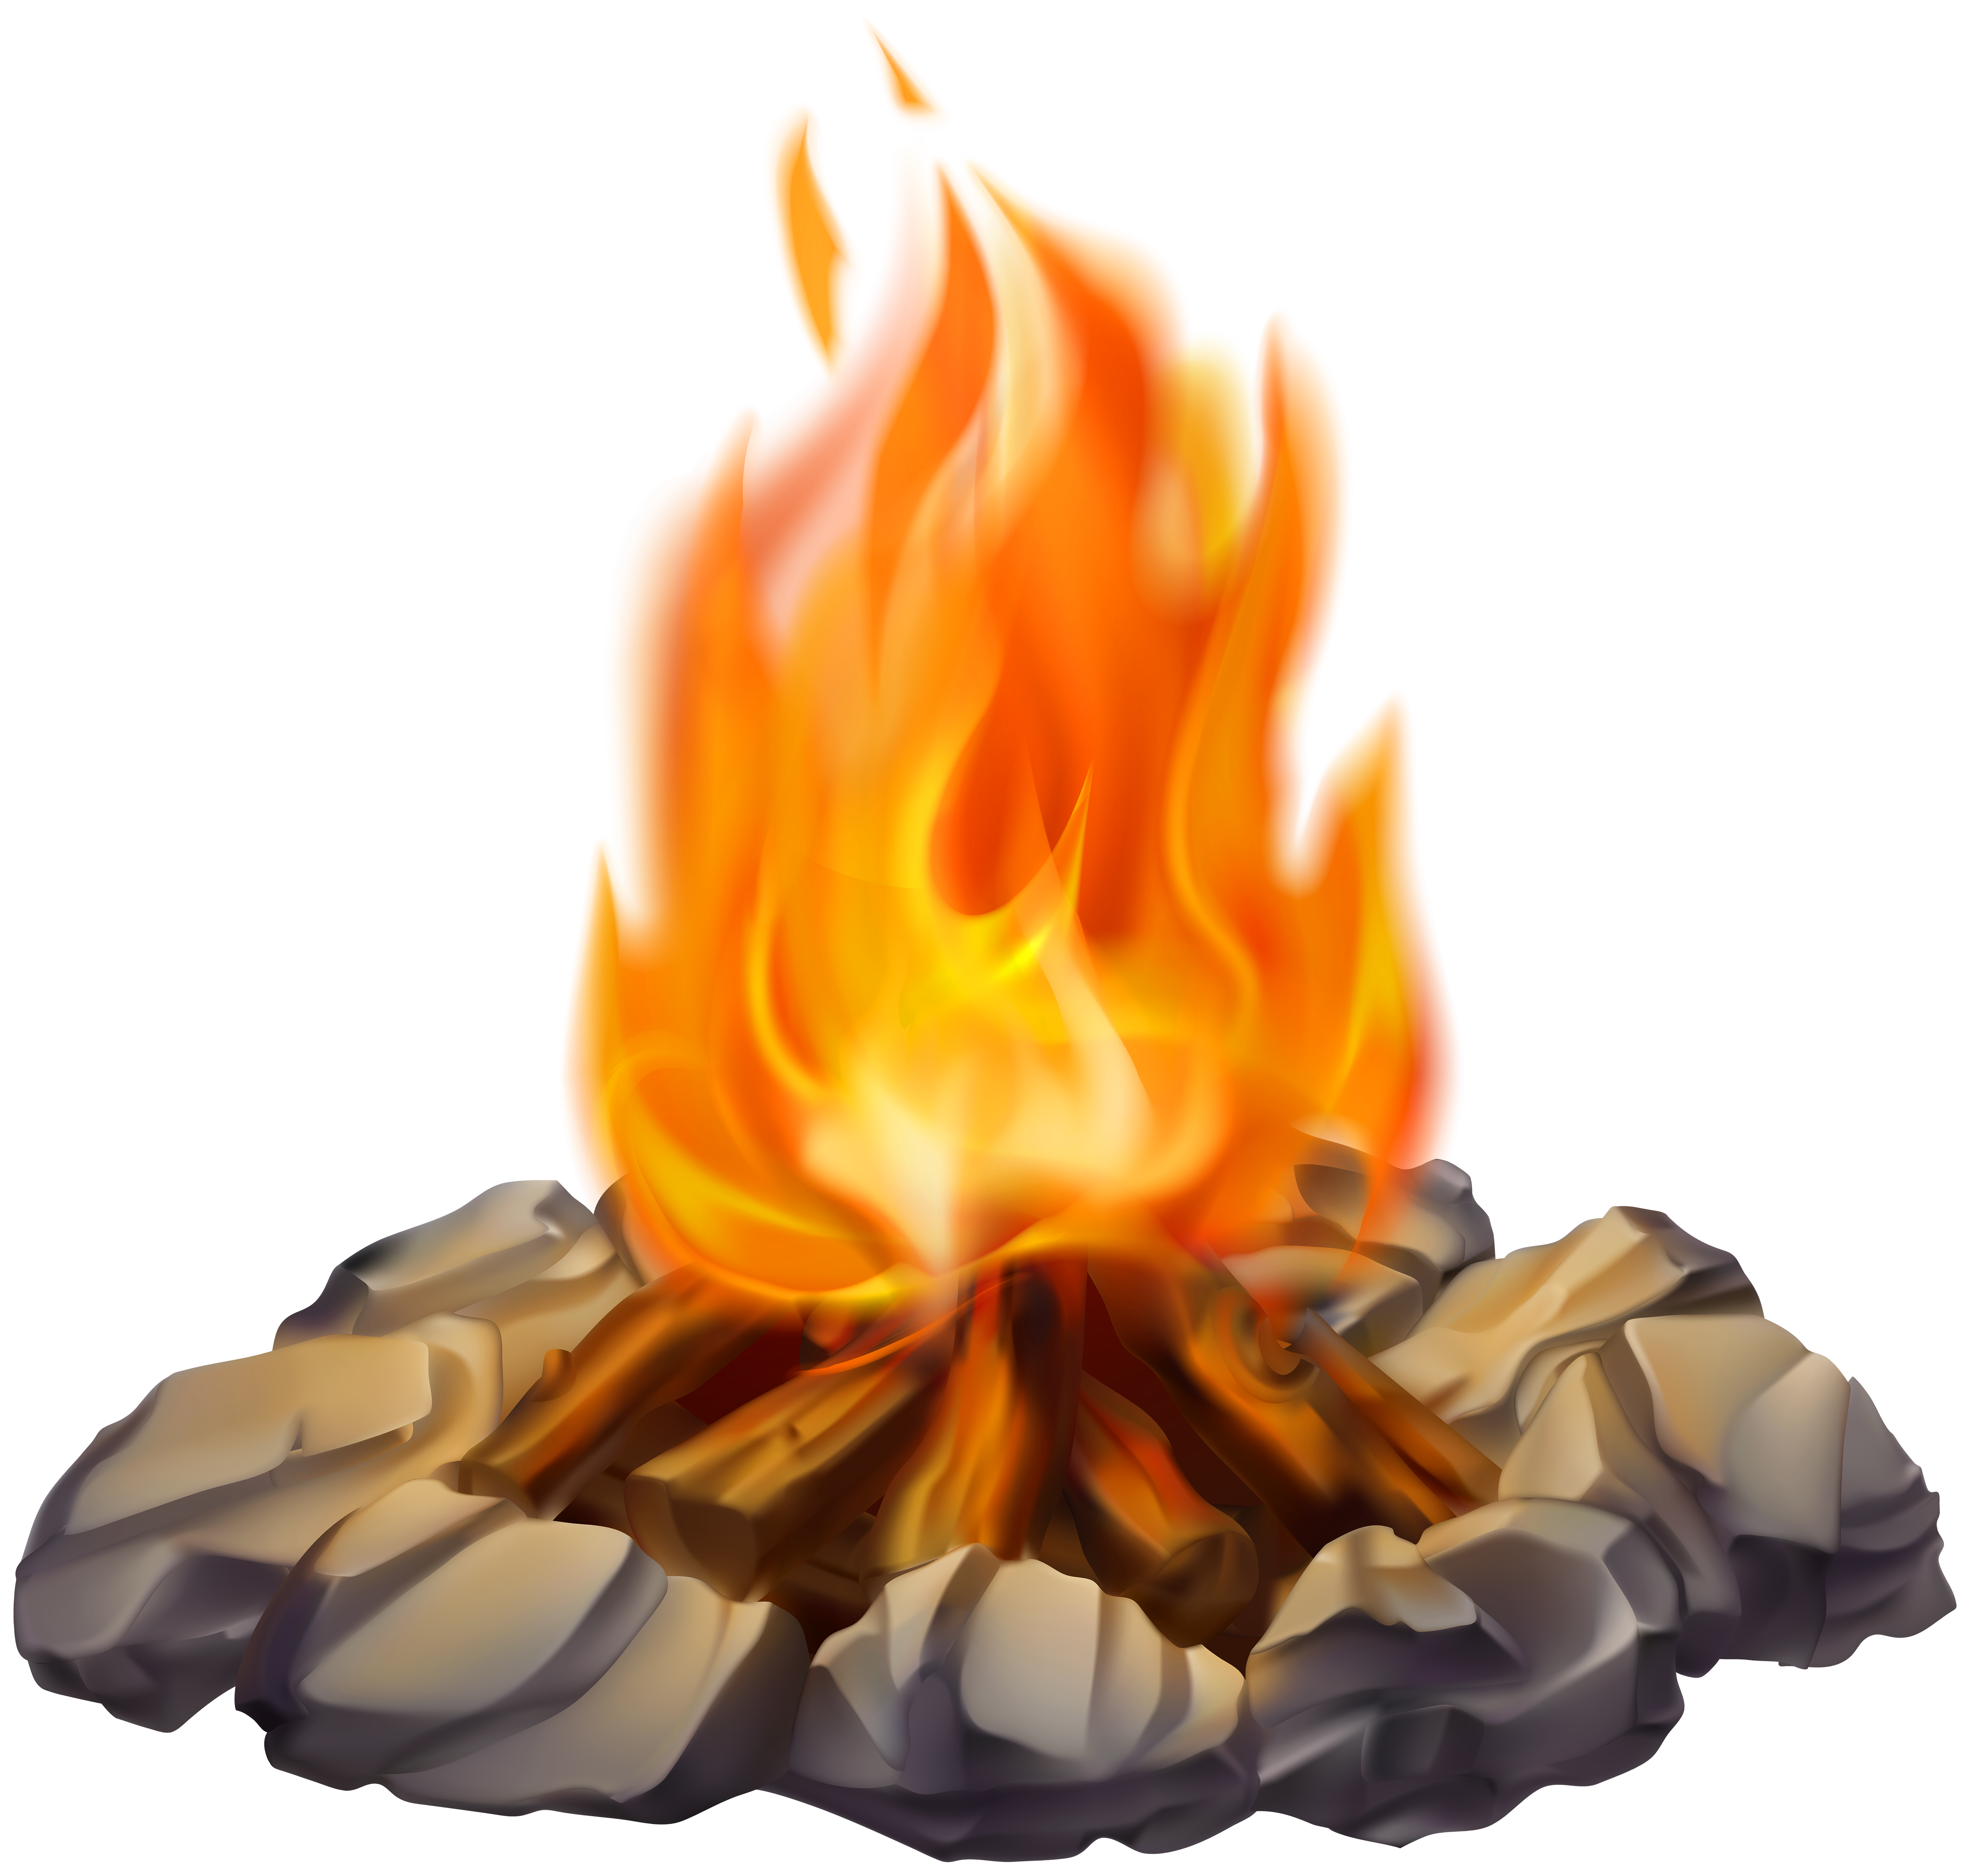 image stock Campfire clipart. Png clip art image